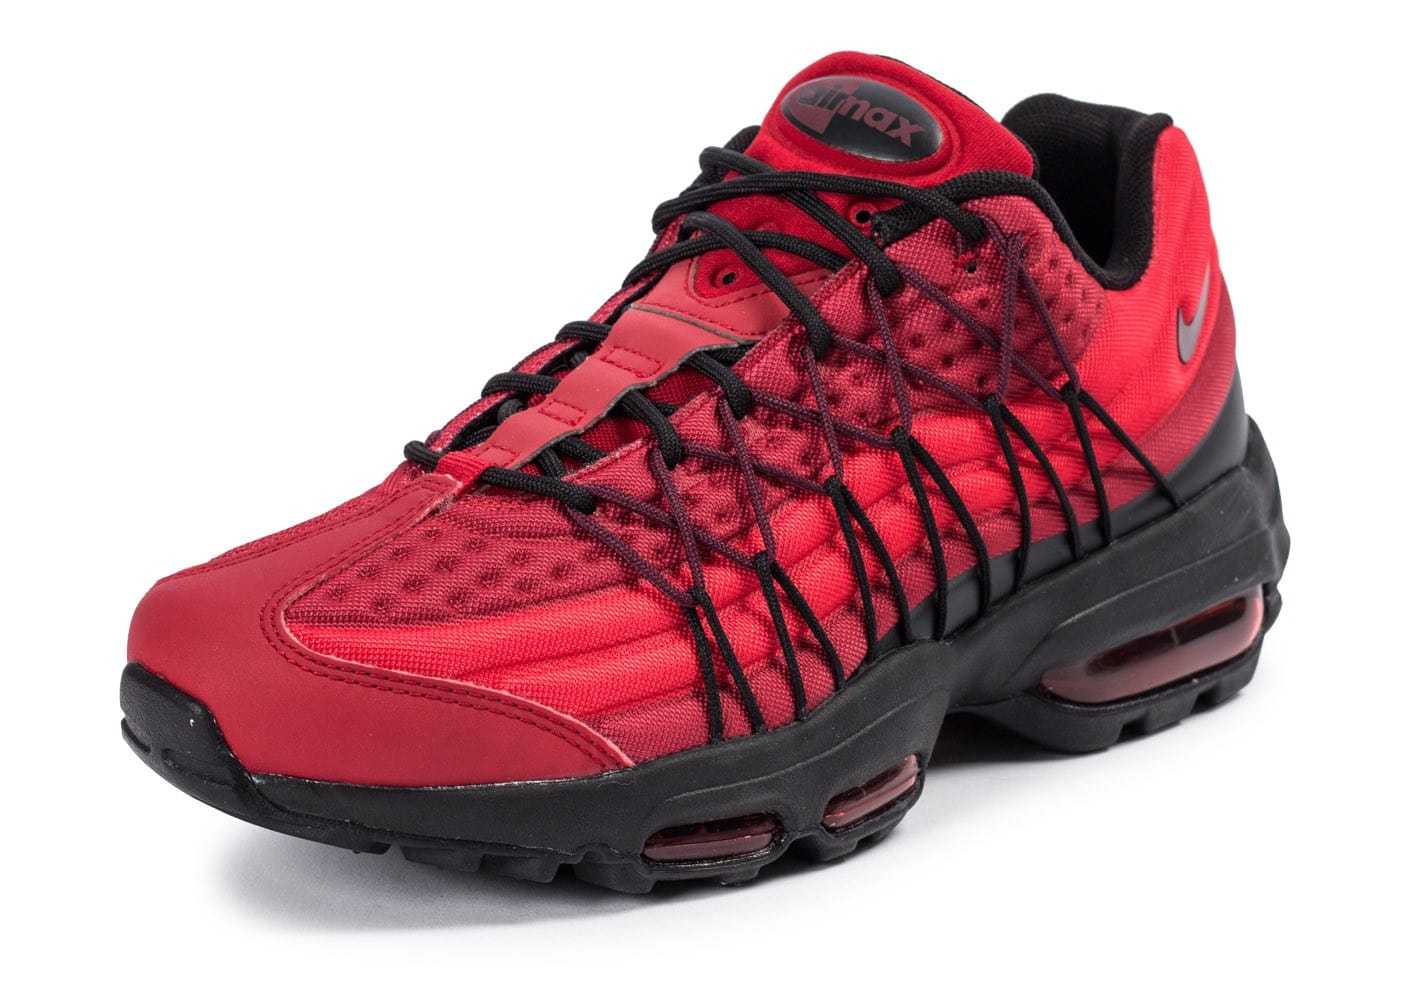 ... Chaussures Nike Air Max 95 Ultra SE rouge vue avant ...